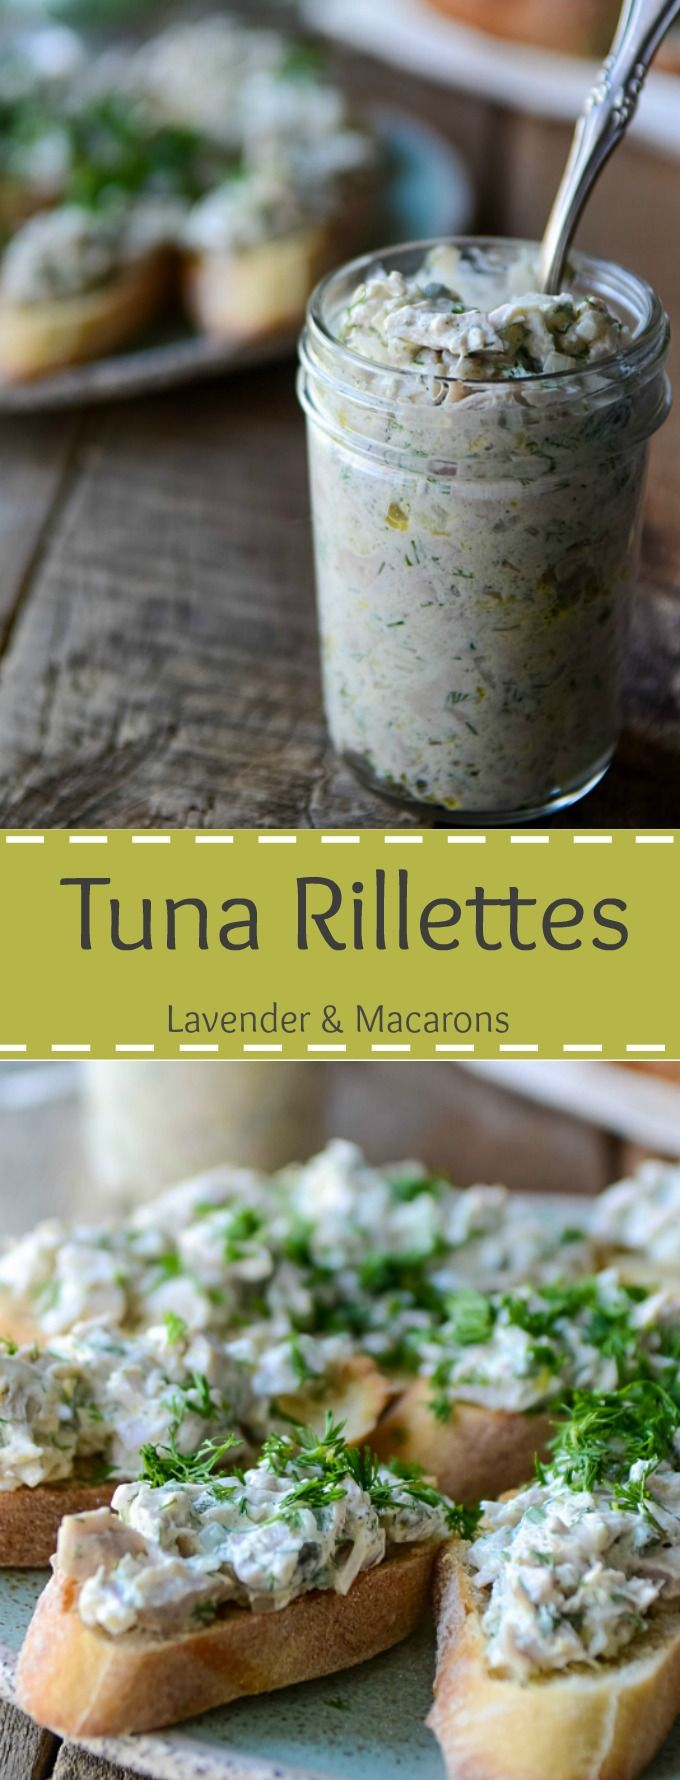 Tuna Rillettes is a rustic French spread made from Baked Tuna and. It's great as party starter served on a crusty baguette or toast. via @https://www.pinterest.com/lavenderandmcrn/